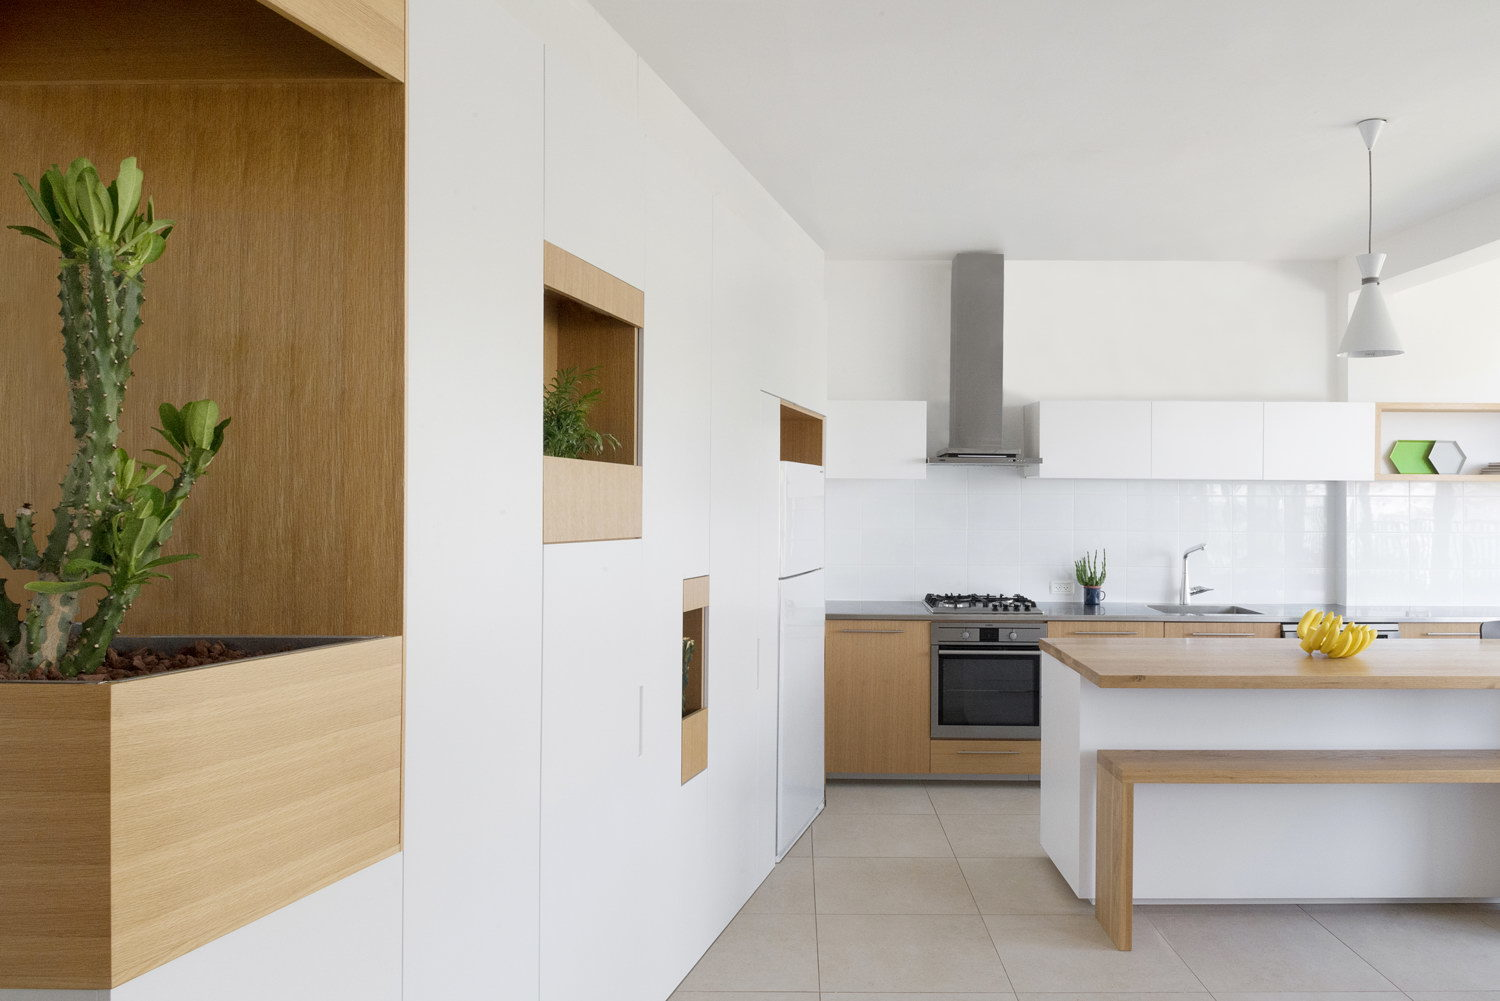 Renovated Apartment in Ramat Gan by Itai Palti